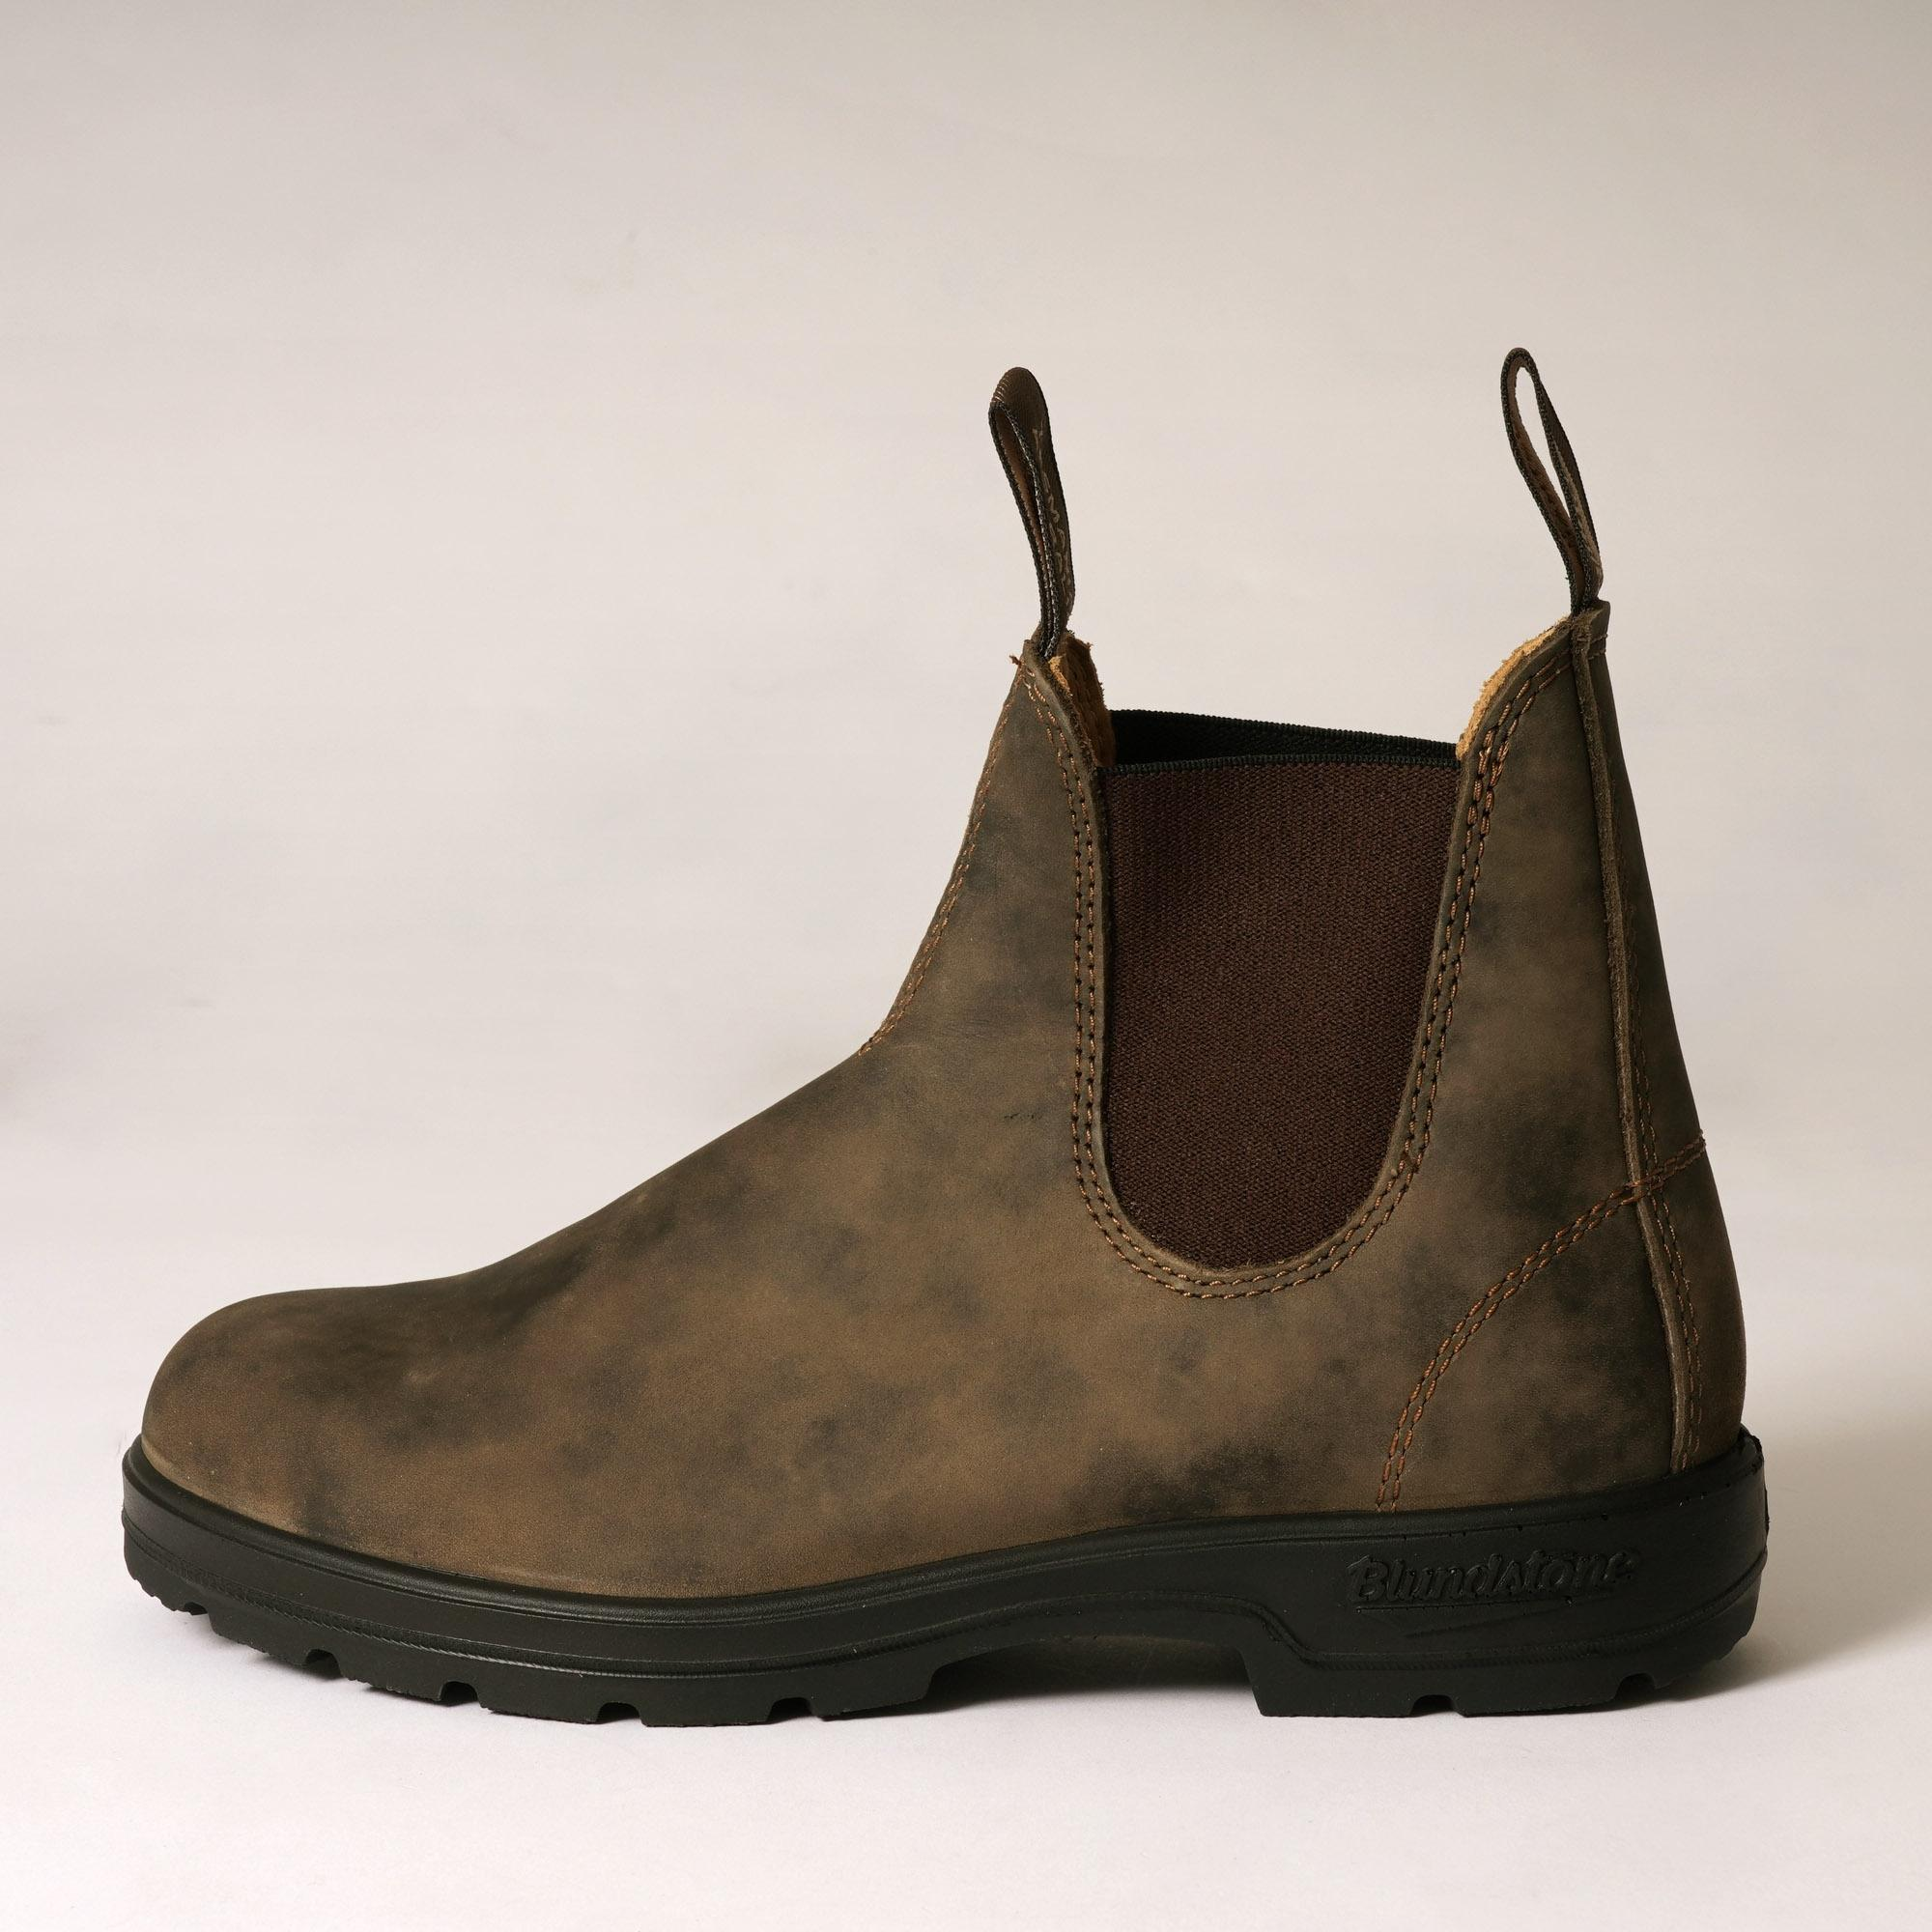 f2fdf615ecb6 Lyst - Blundstone 585 Chelsea Boots - Rustic Brown in Brown for Men